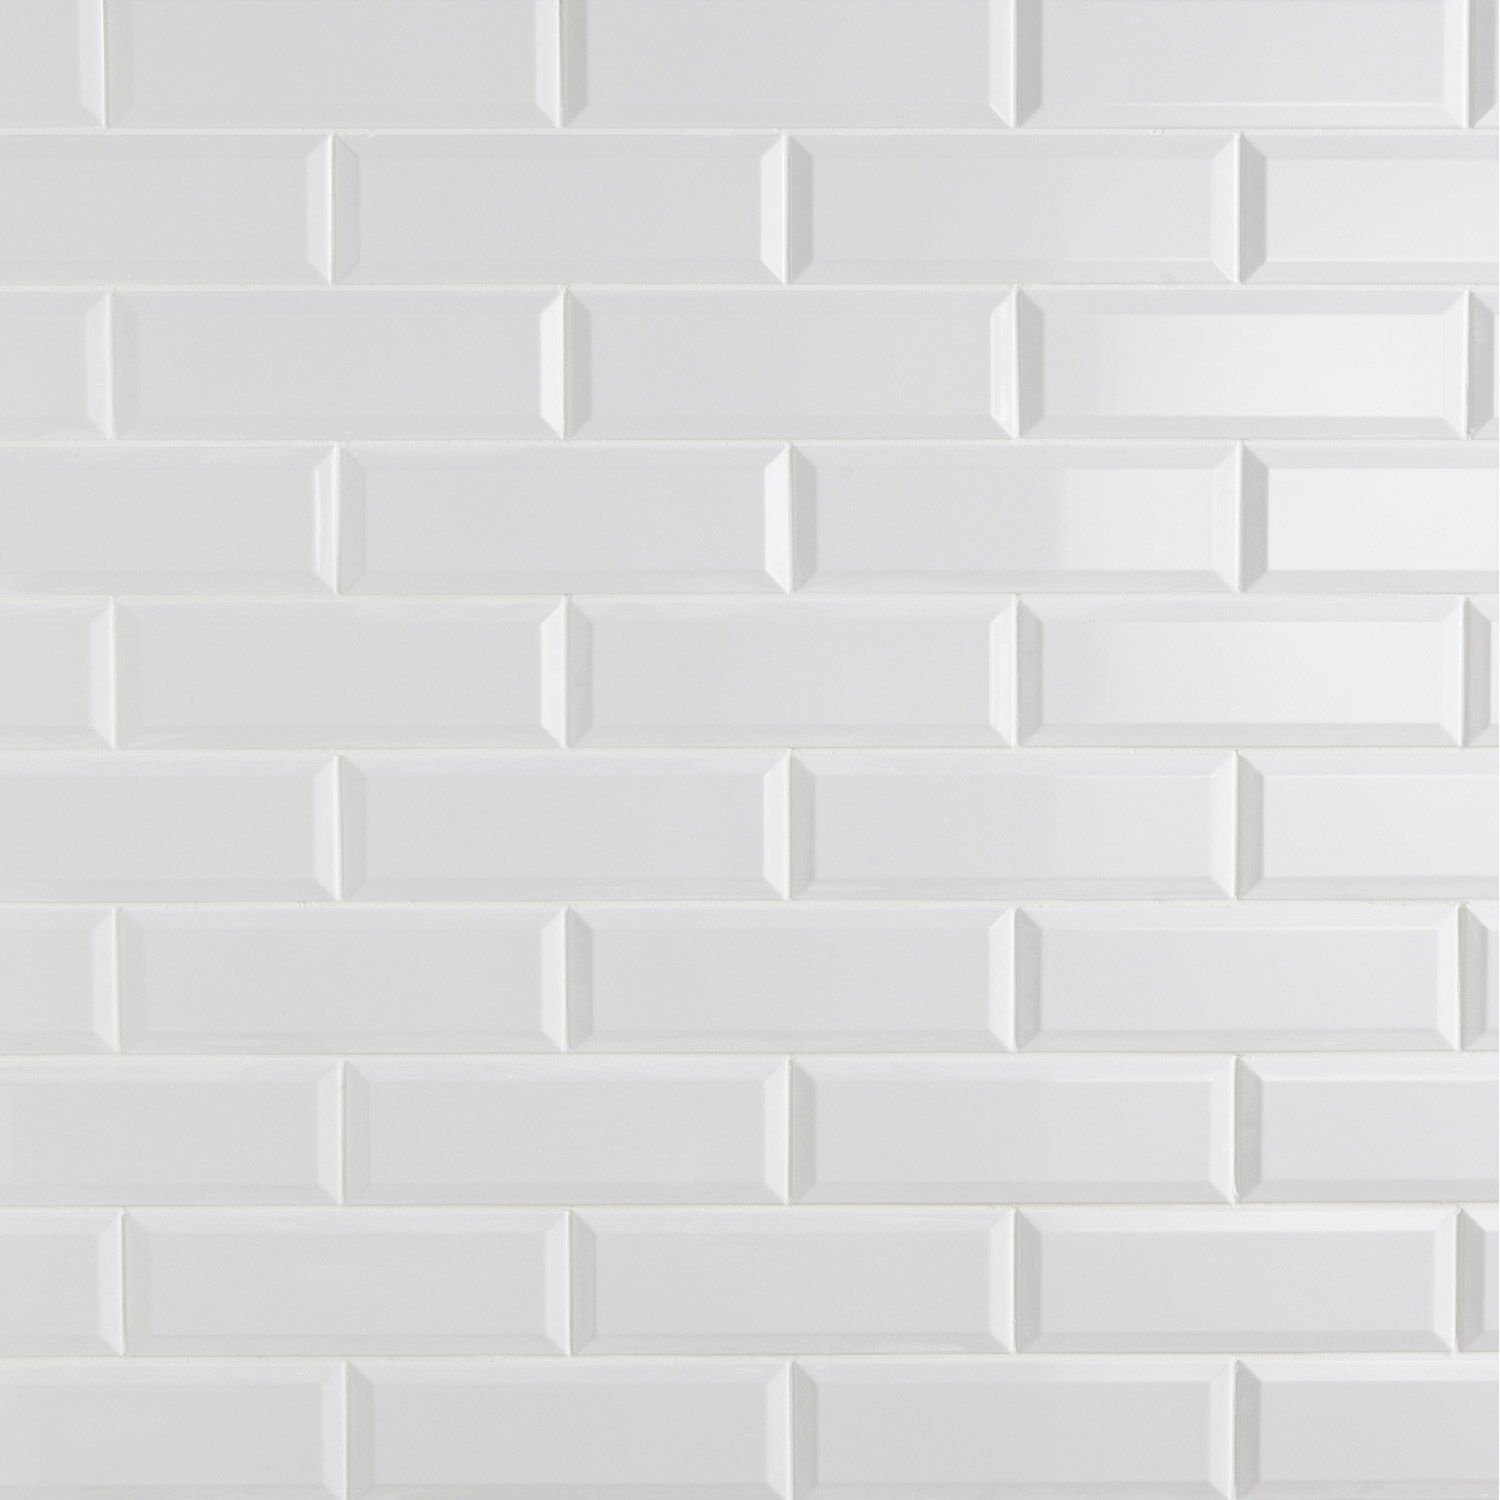 Destination du carrelage mur aspect mati re les blancs mati re fa ence cafe metro tiles - Carrelage metro salle de bain ...